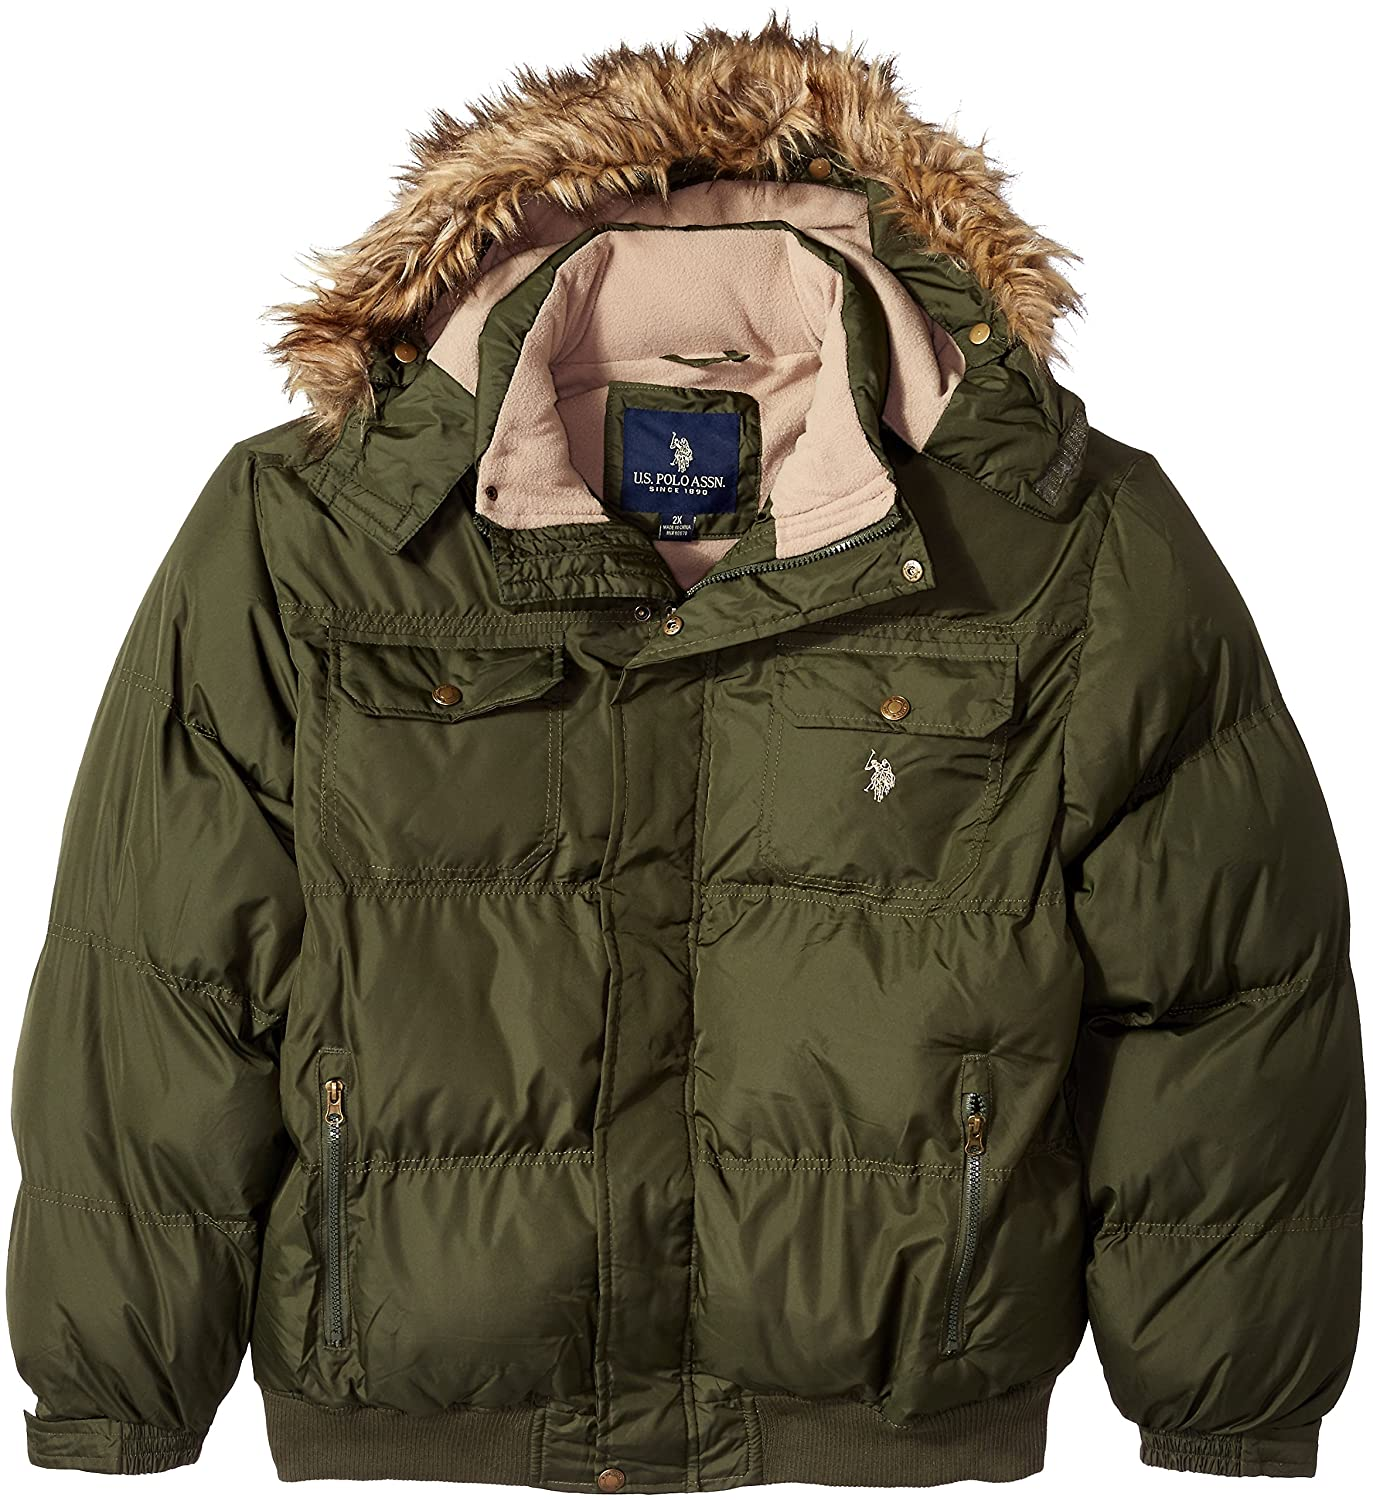 U.S. Polo Assn. OUTERWEAR メンズ B01LCMEHG2 2X|Forest Night Gjbk Forest Night Gjbk 2X